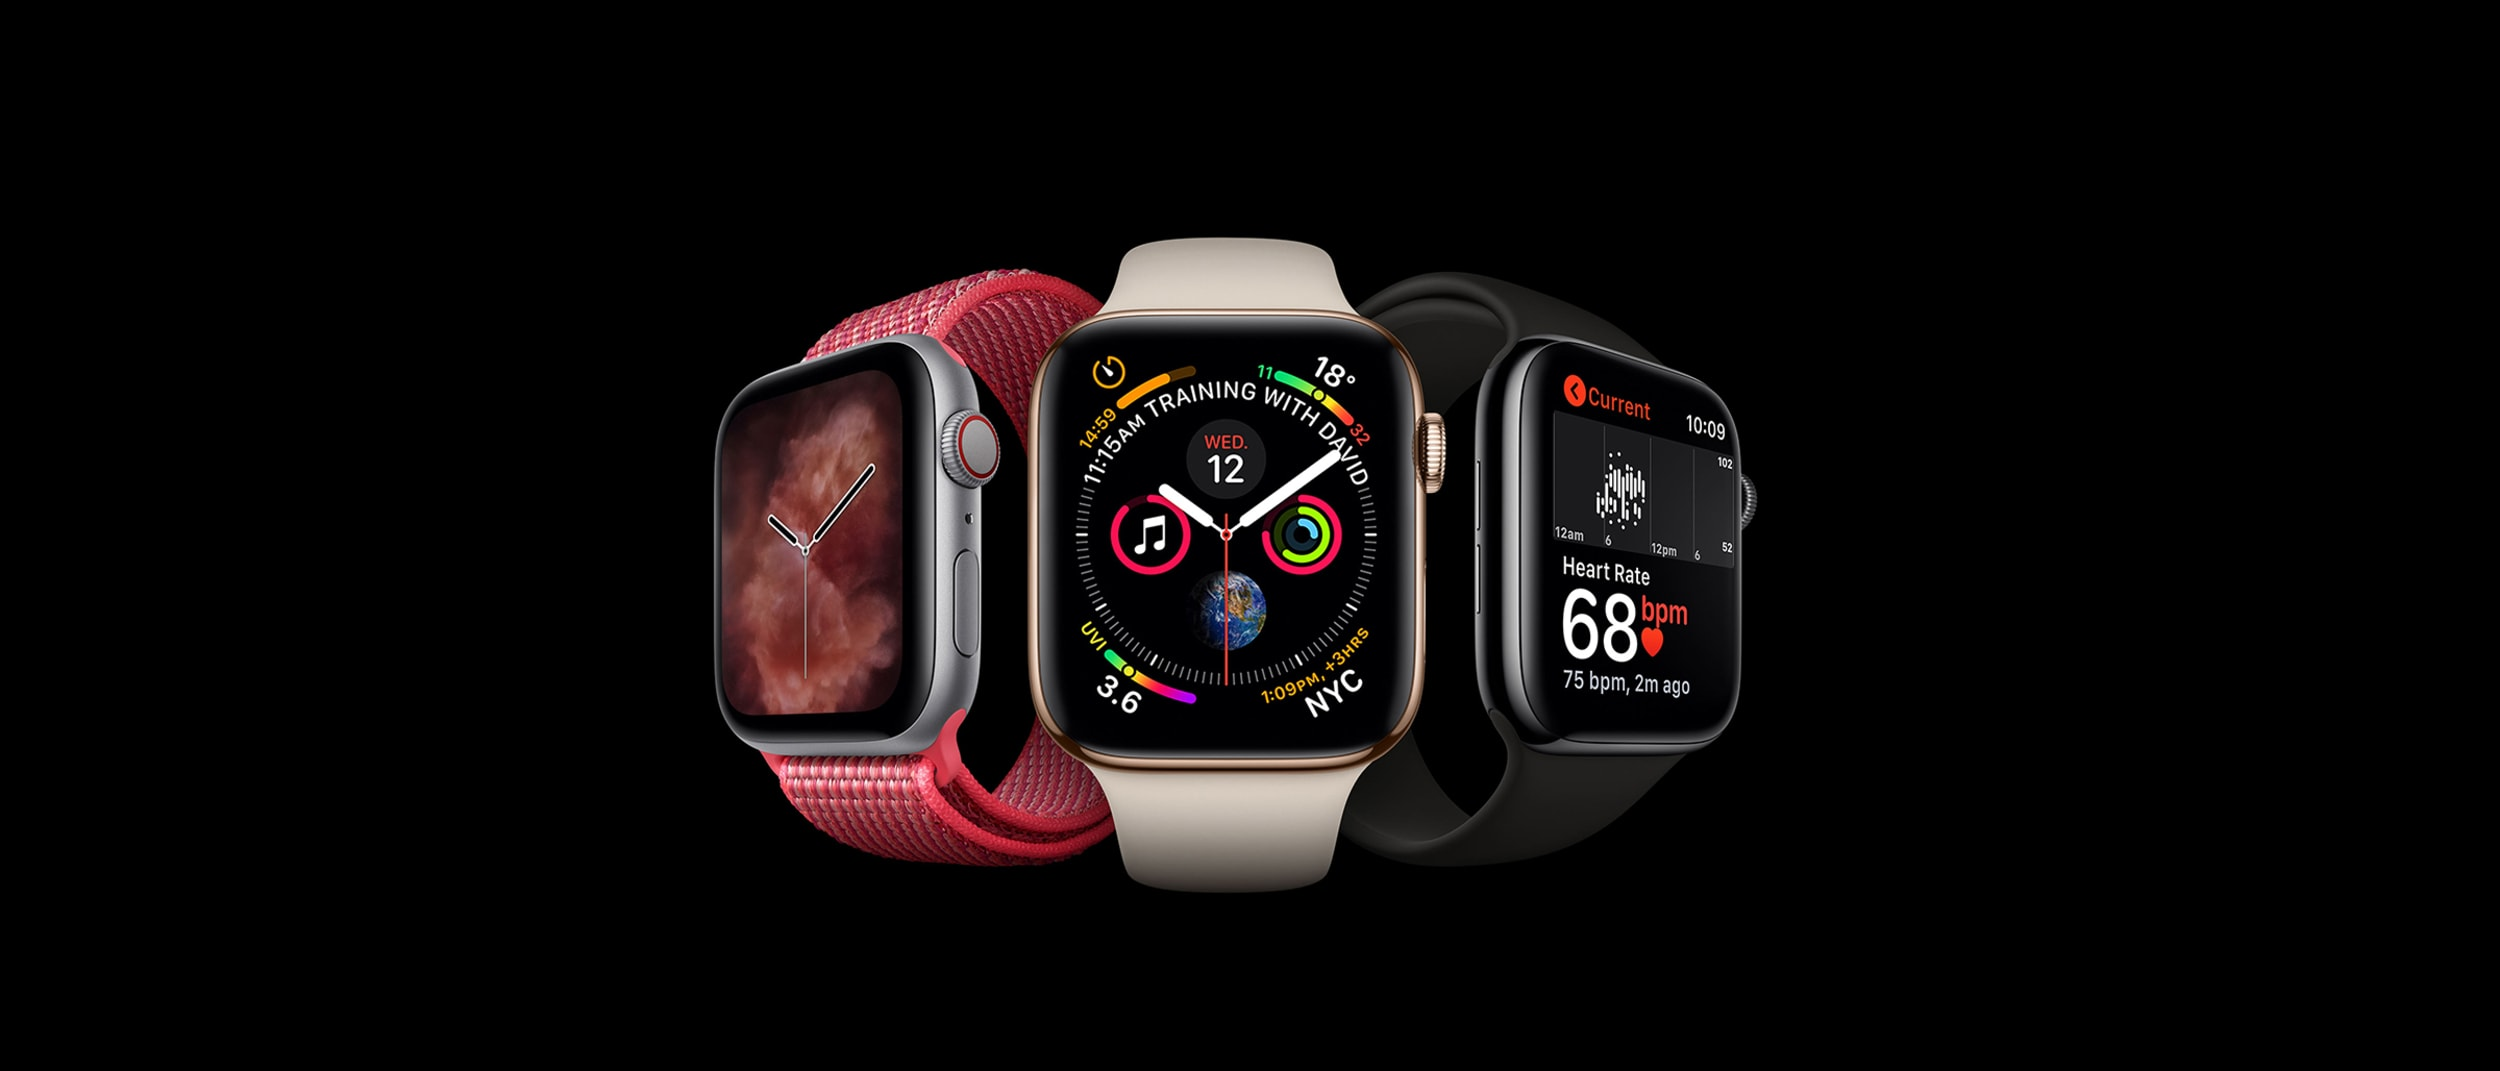 Apple: introducing the Apple Watch Series 4 (GPS)